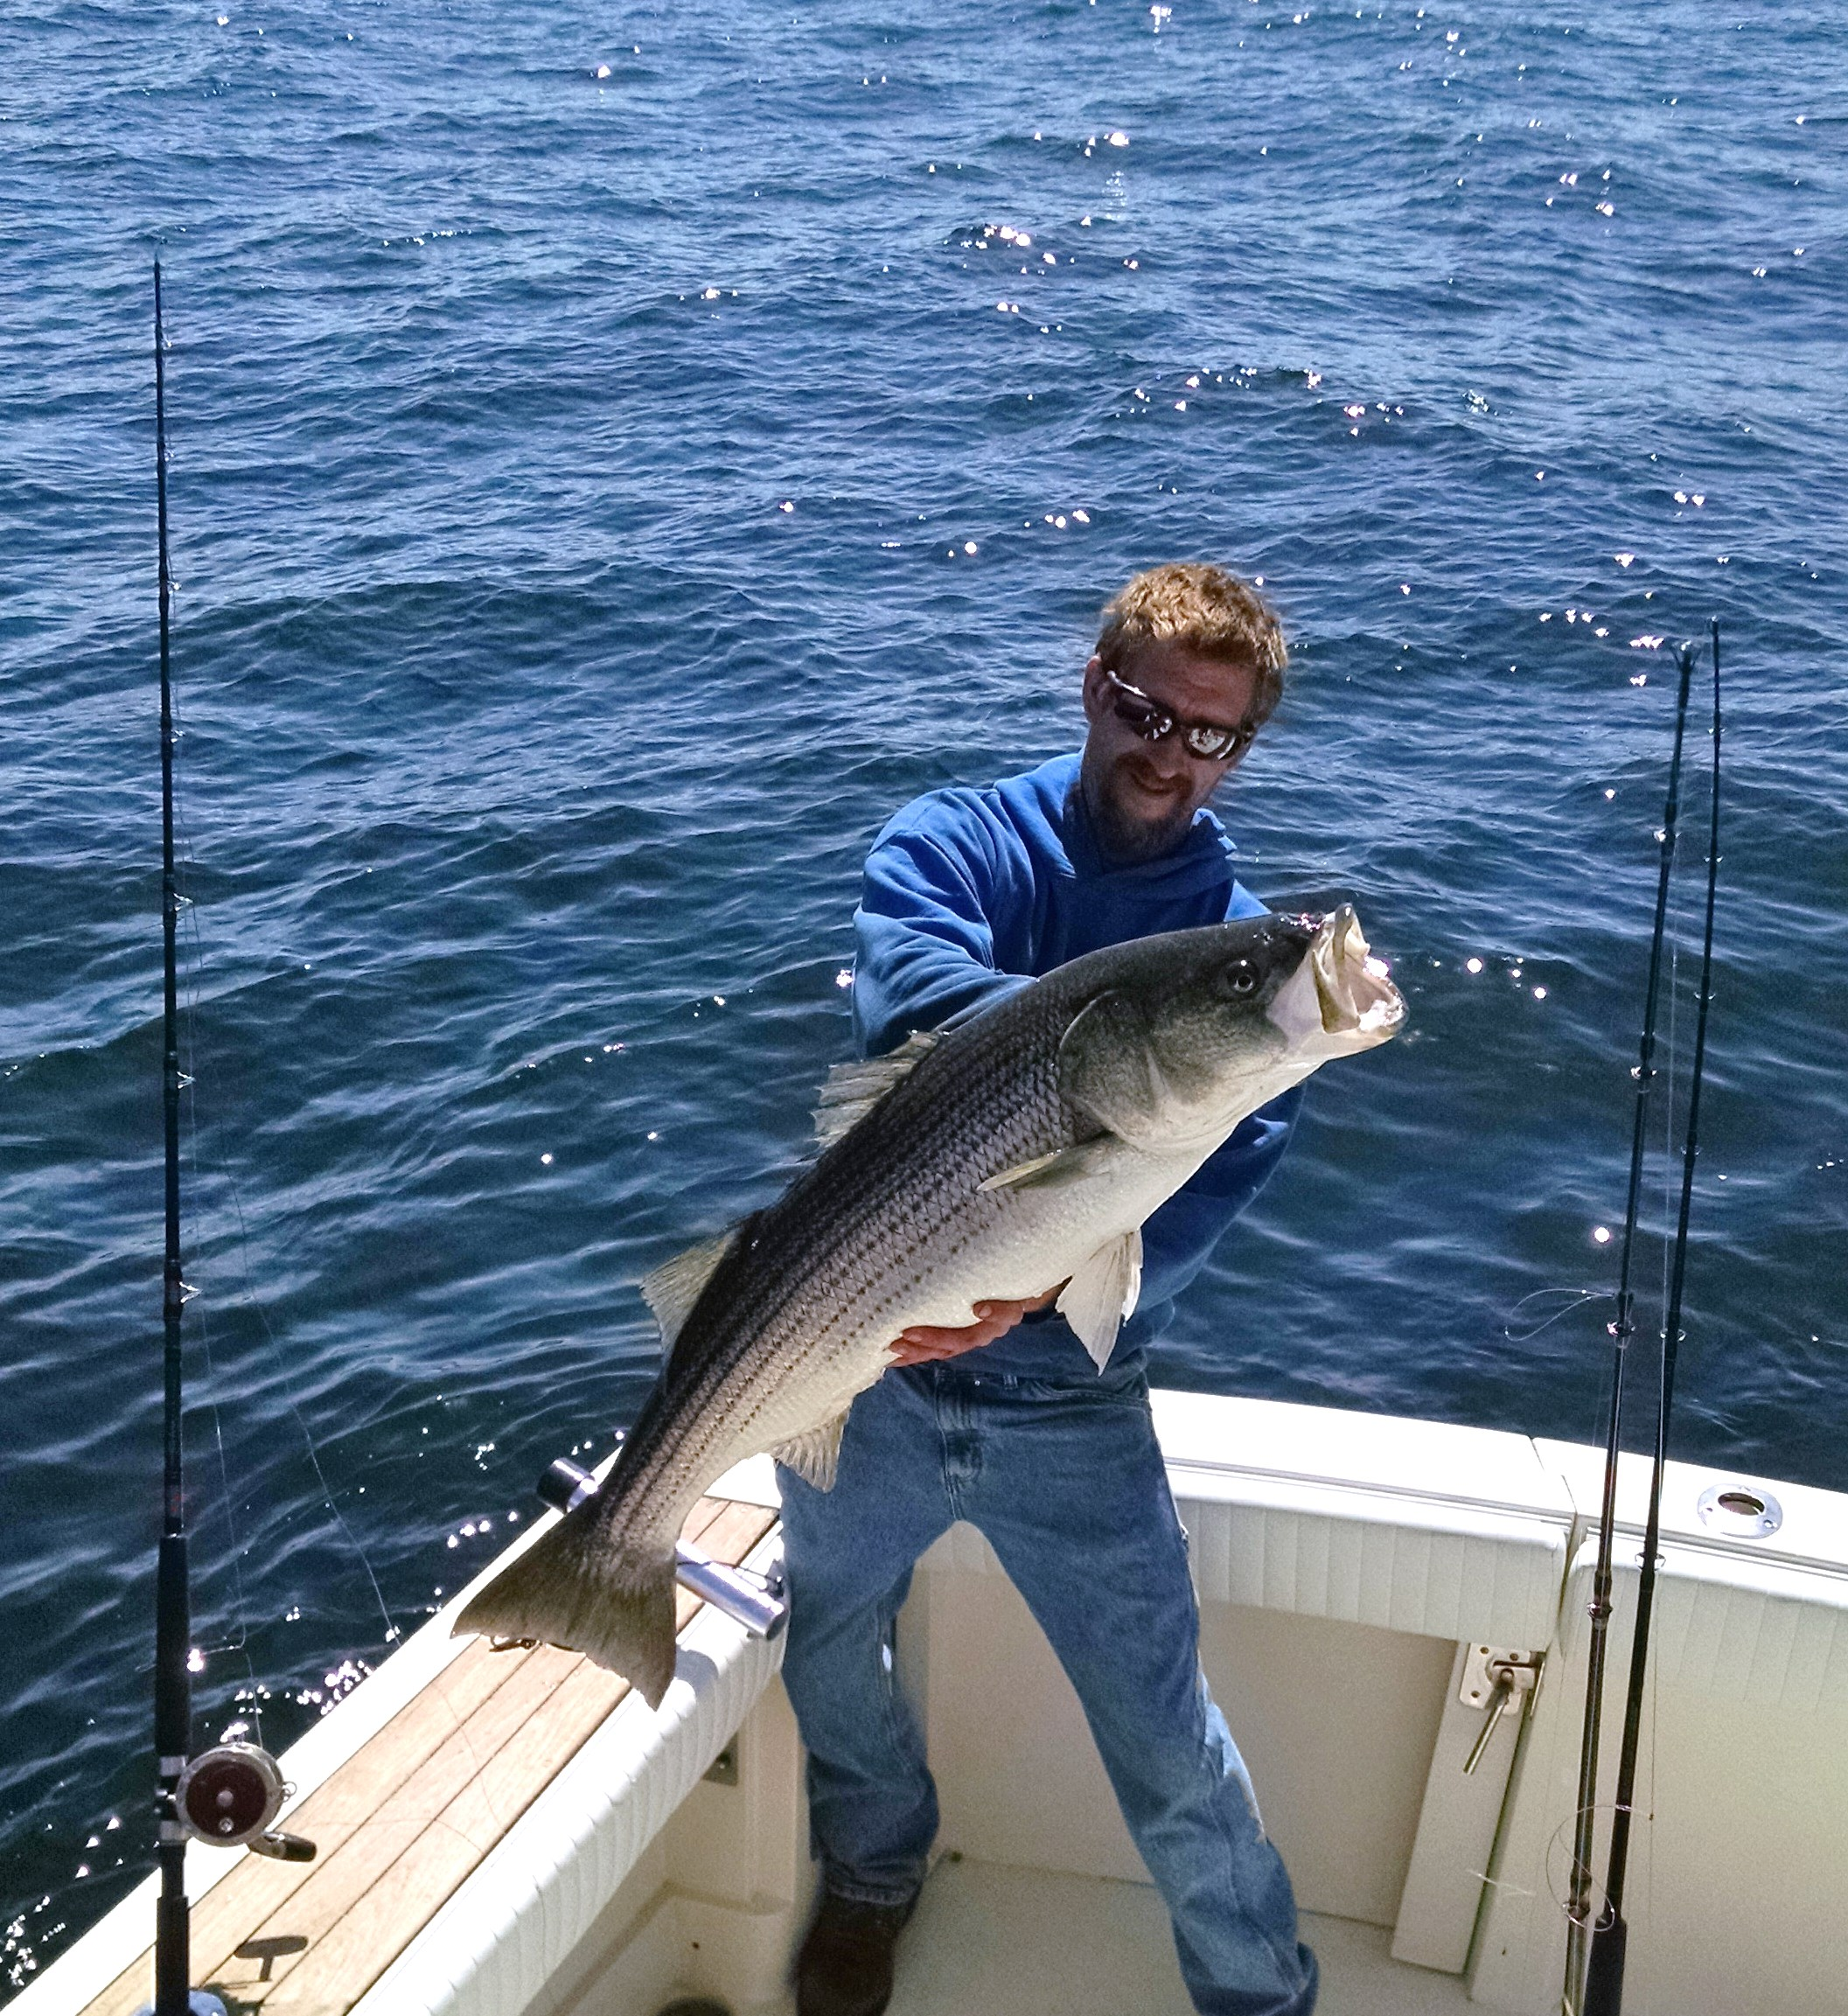 fishing in new jersey with blue chip sportfishing charters